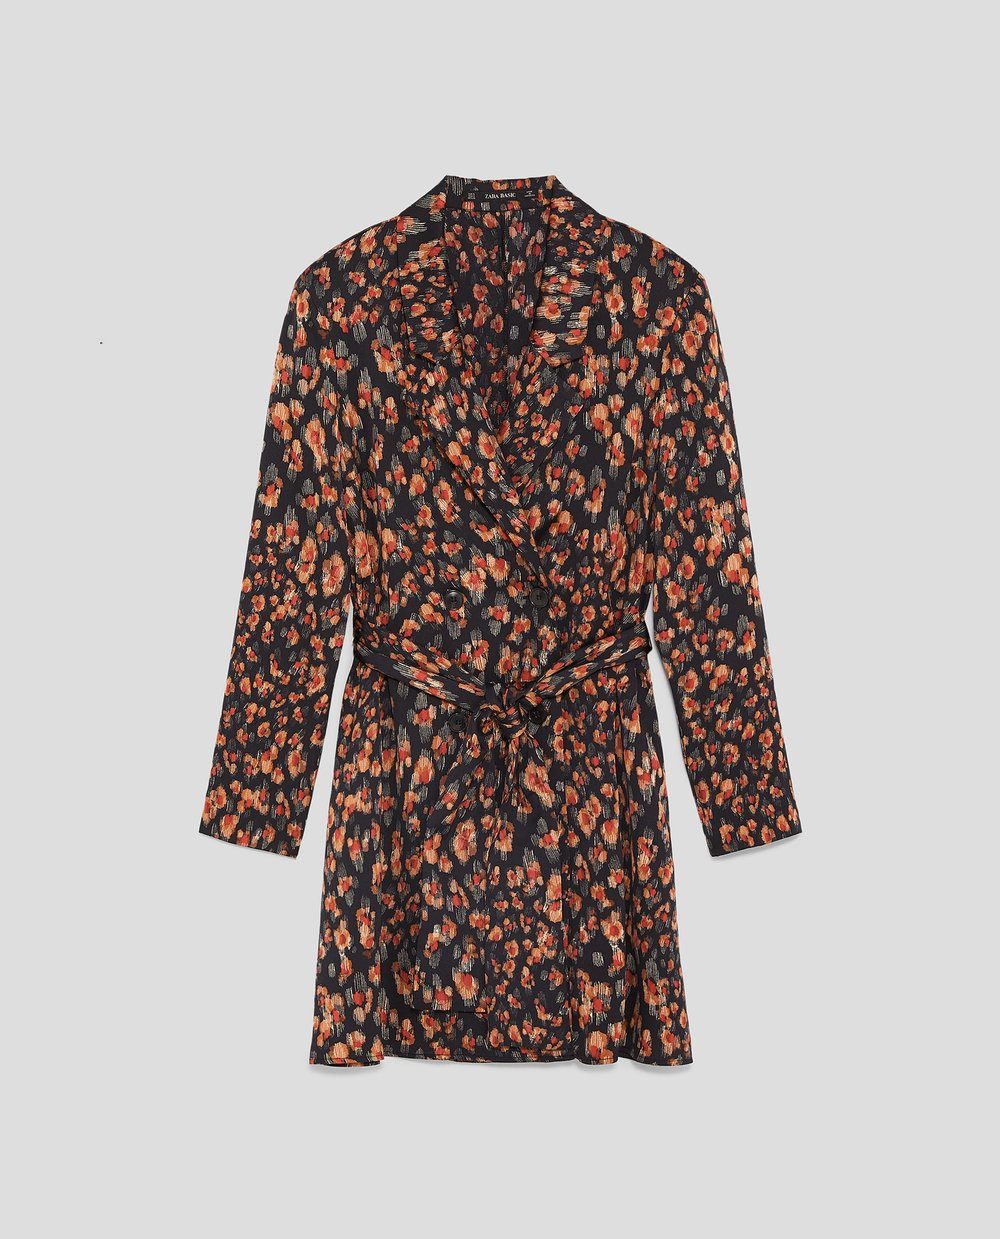 ROSE & IVY Journal The Find | A Printed Blazer Dress